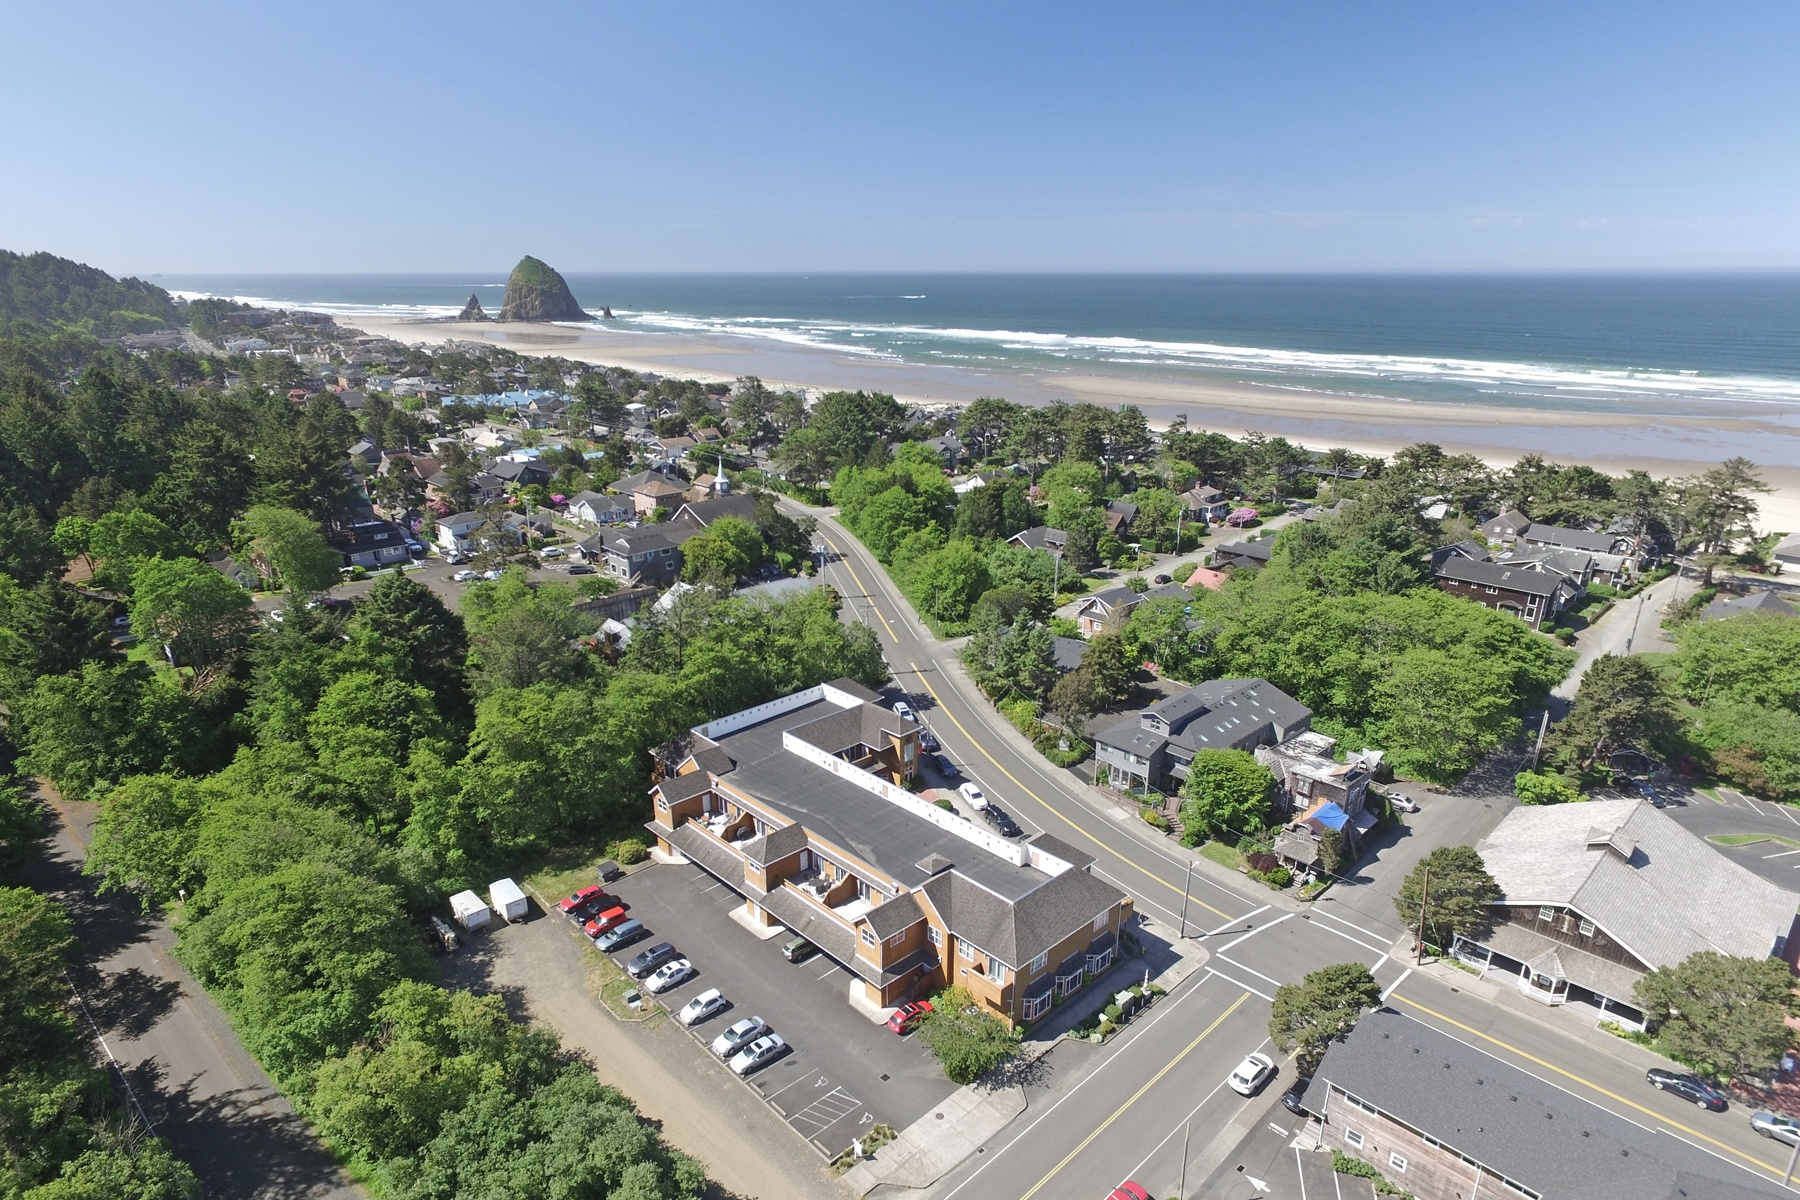 Condominium for Sale at 123 S Hemlock ST #205, CANNON BEACH Cannon Beach, Oregon, 97110 United States